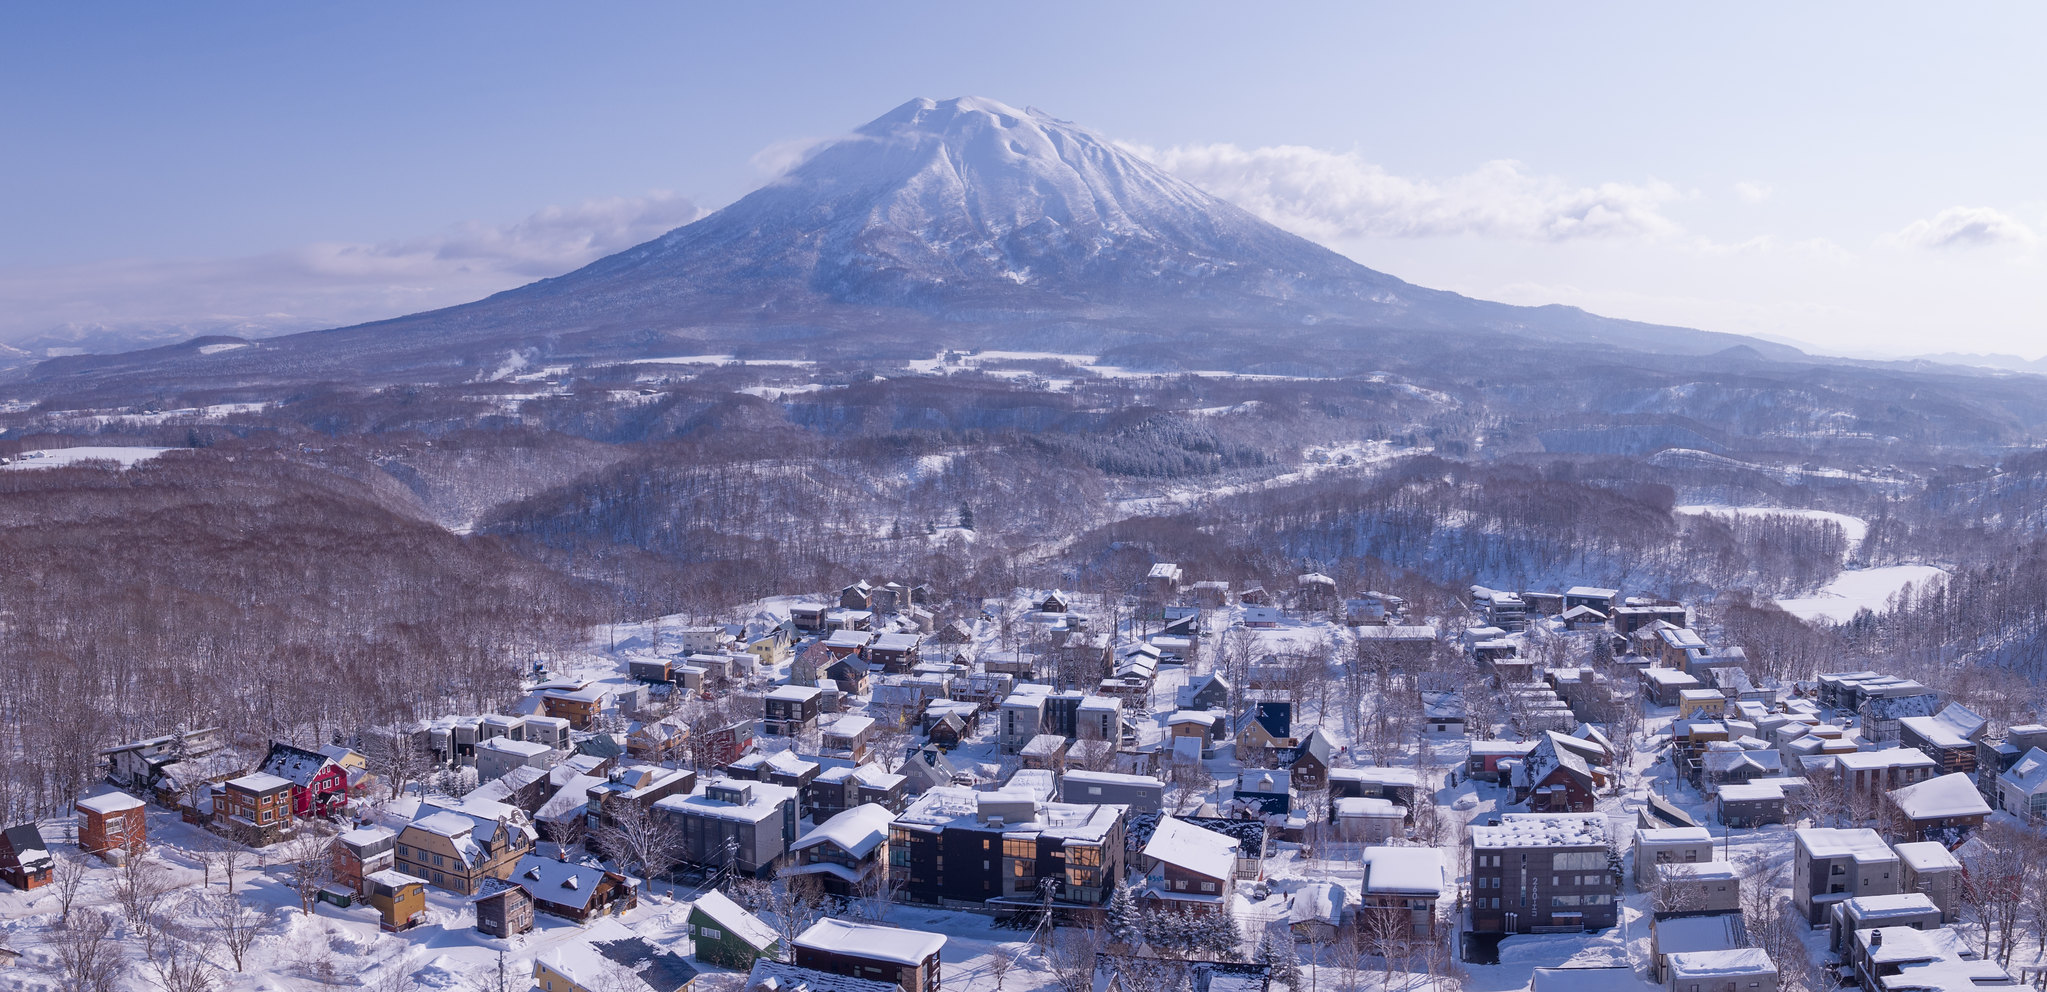 Lower Hirafu village in Niseko, Japan.